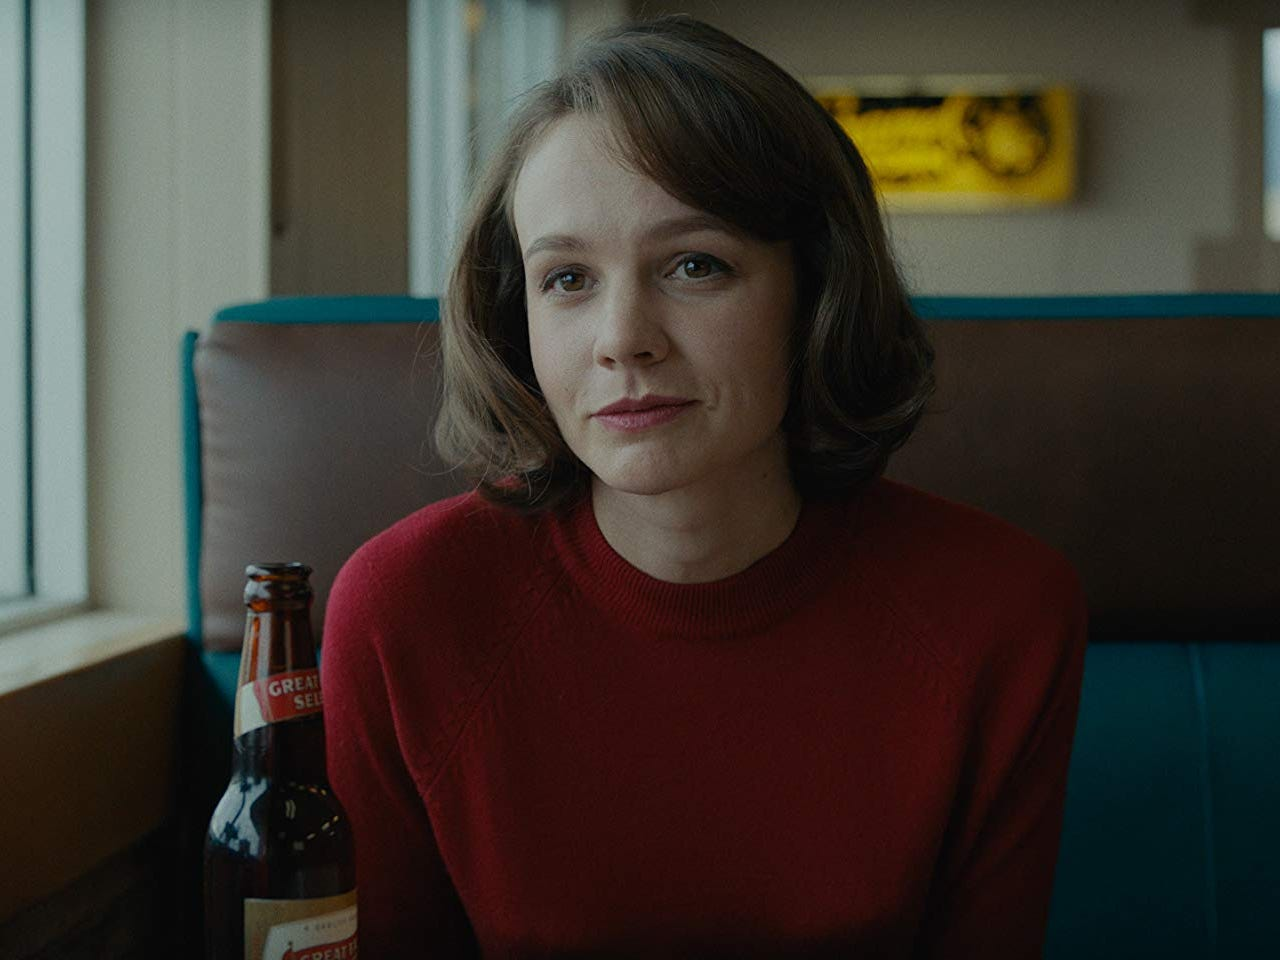 Review: Carey Mulligan careens out of control in tightly wound 'Wildlife'